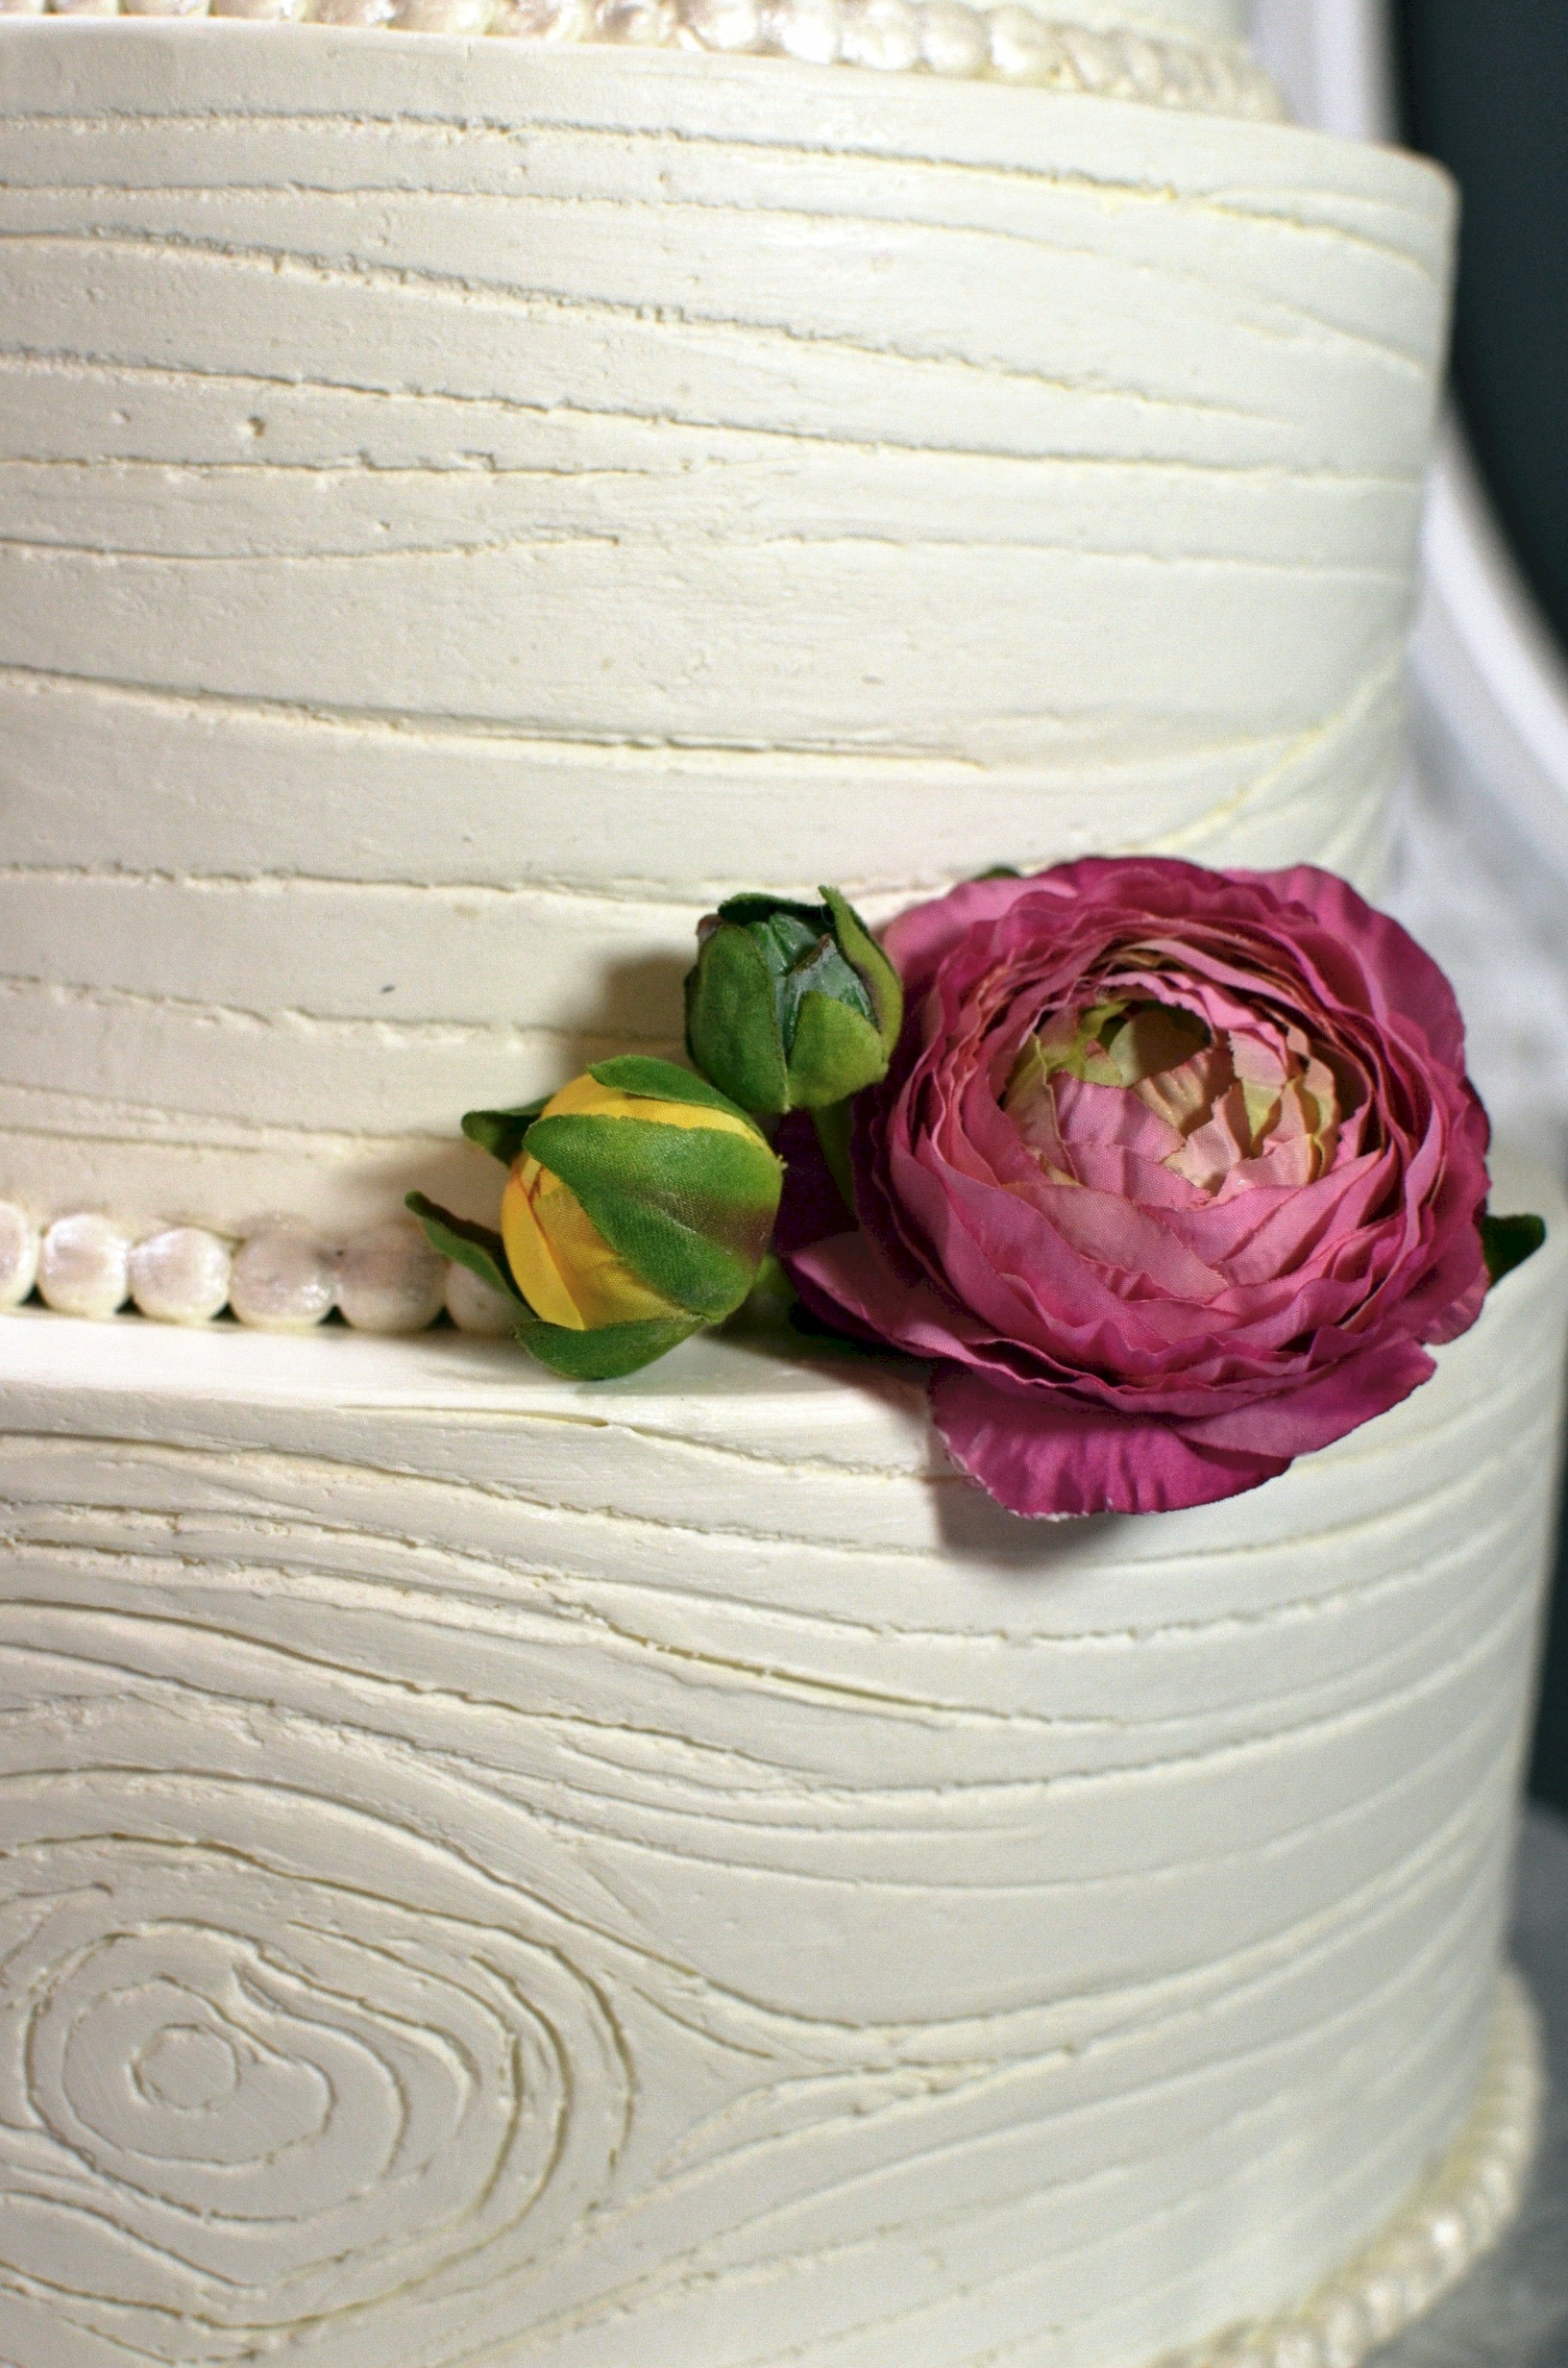 Buttercream Woodgrain Wedding Cake  Cakecentralm. Magick Rings. Tattooed Wedding Rings. Vicky Rings. Ring Day Rings. Tough Engagement Rings. Poudretteite Wedding Rings. Gold Alloy Wedding Rings. Woman Price Engagement Rings